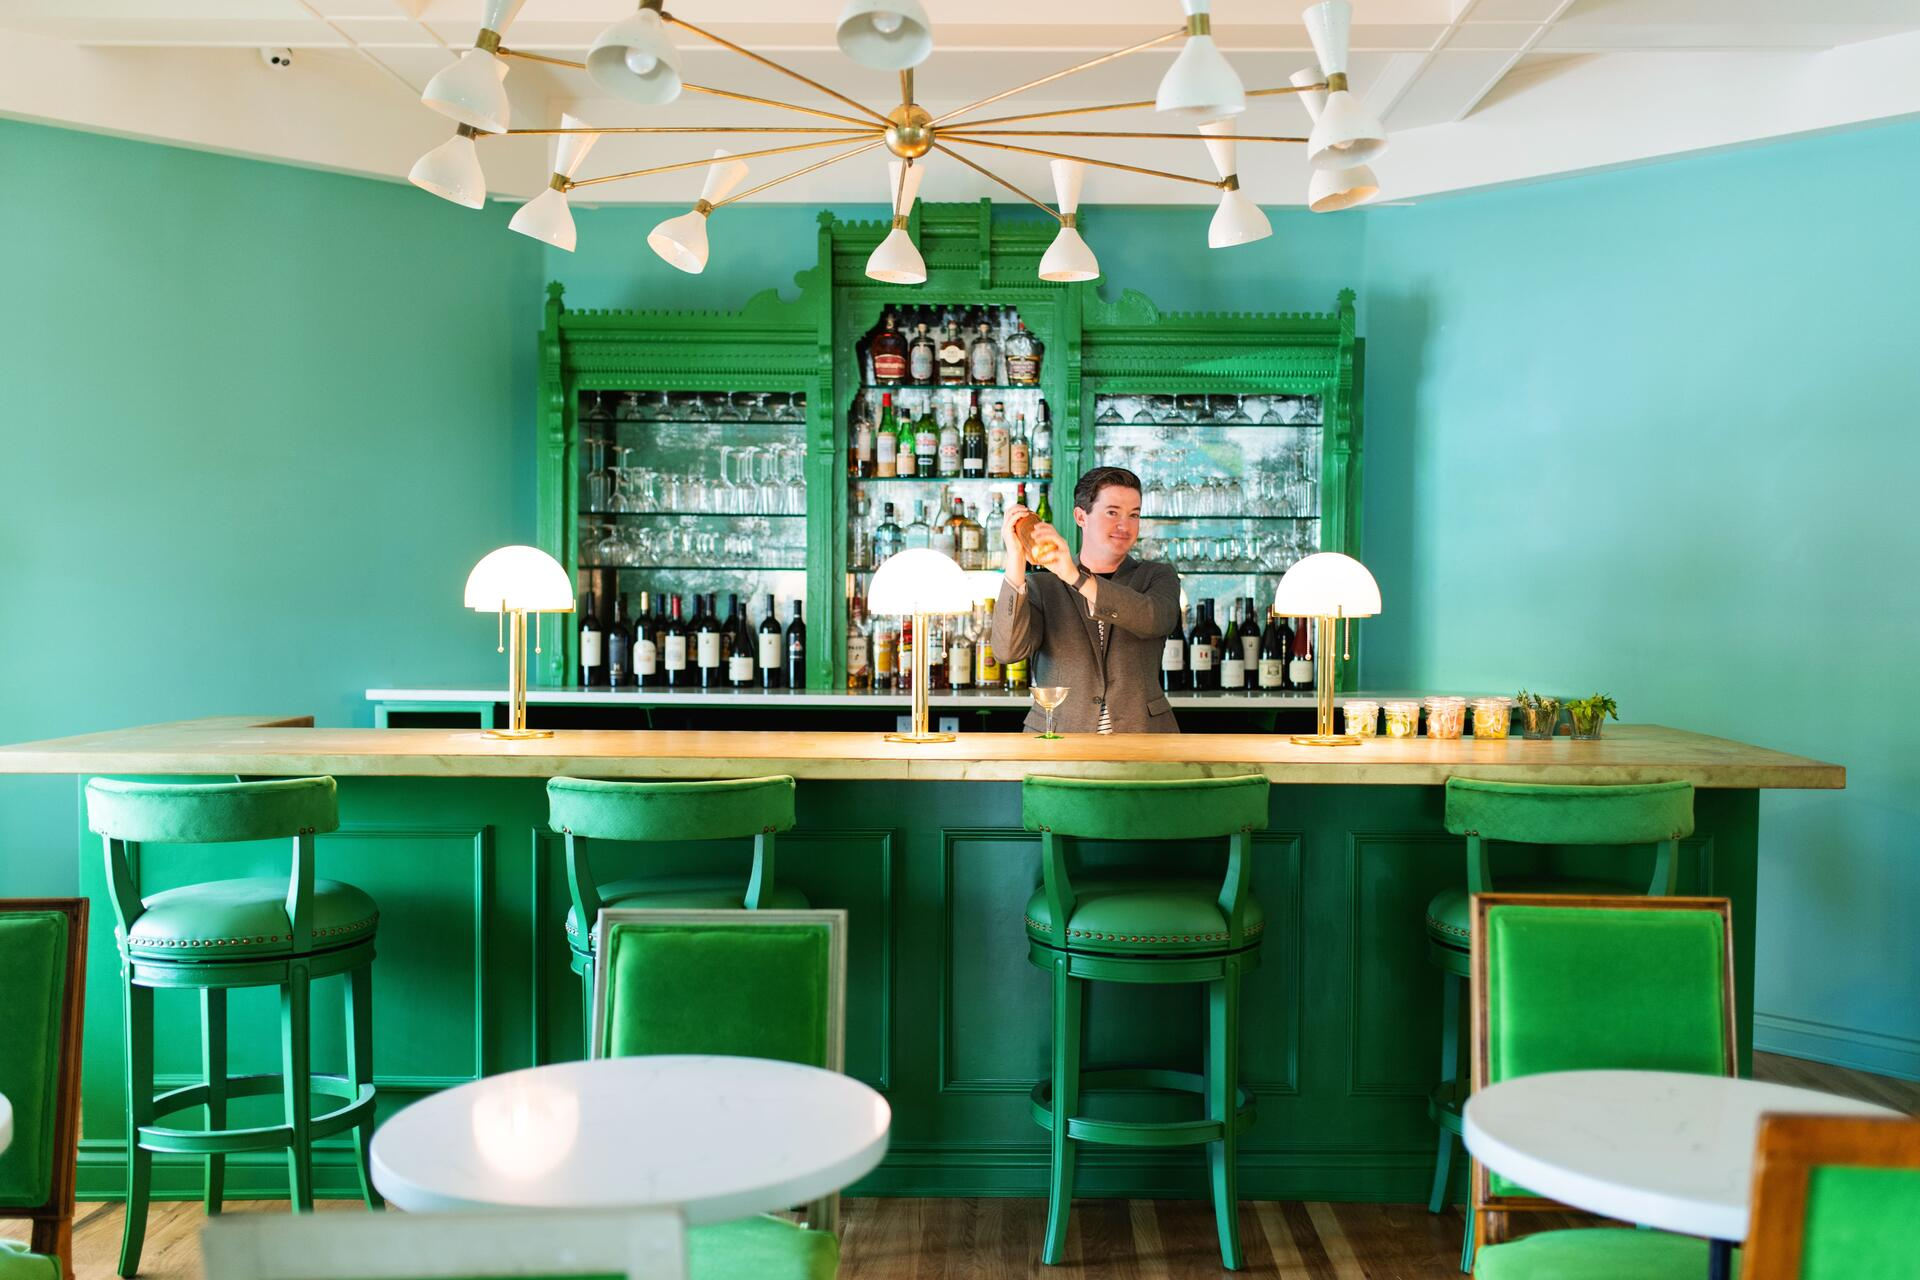 bartender at a green bar in a blue room